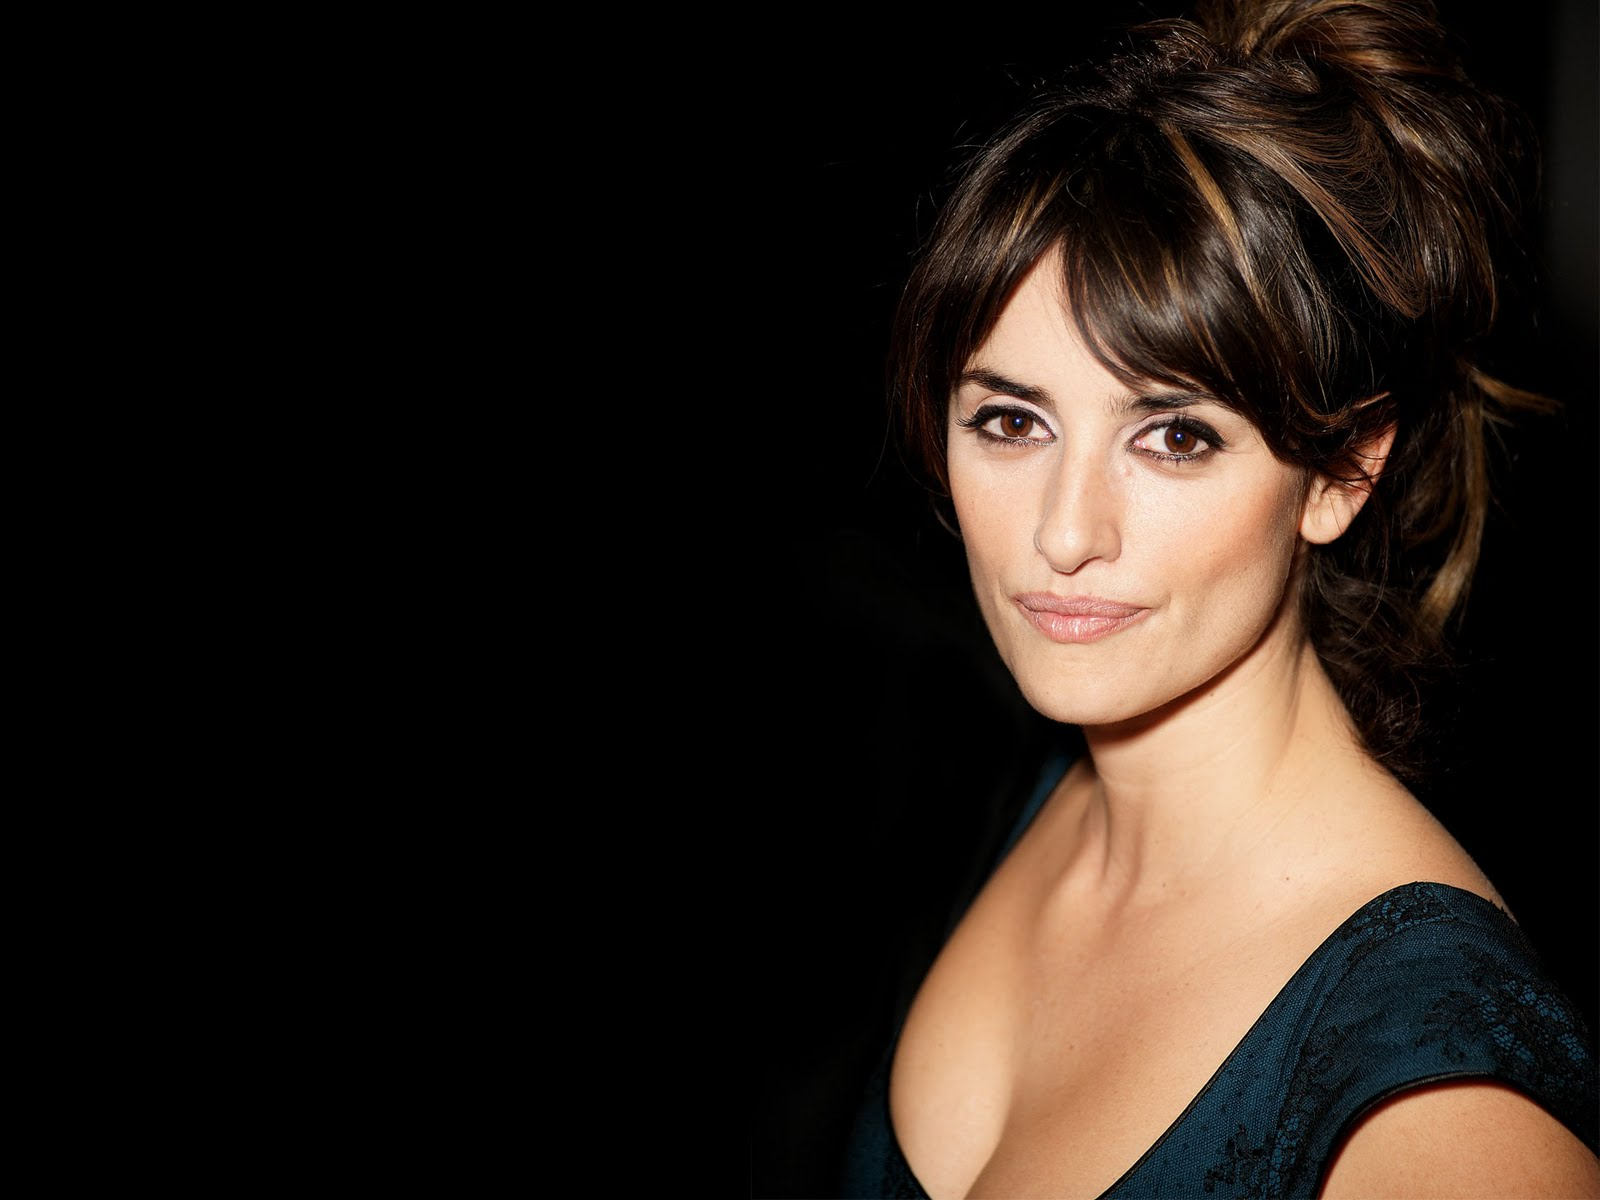 Female Celebrities Spanish Actress Penelope Cruz Wallpapers